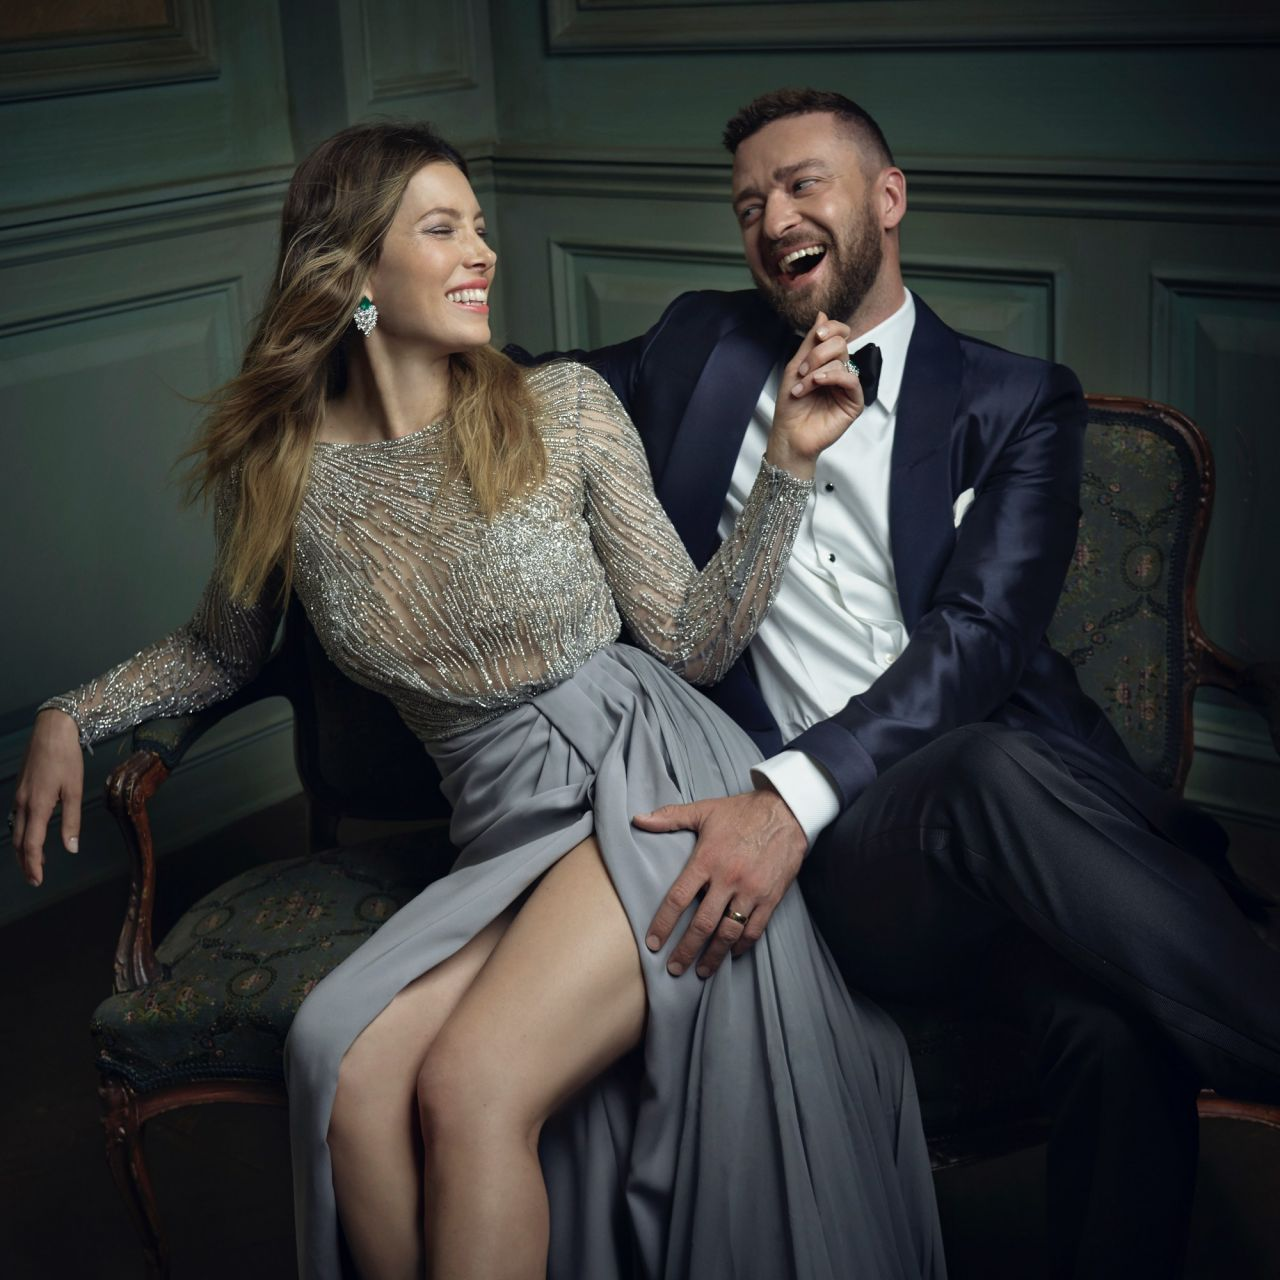 jessica-biel-2016-vanity-fair-oscar-party-portrait-1